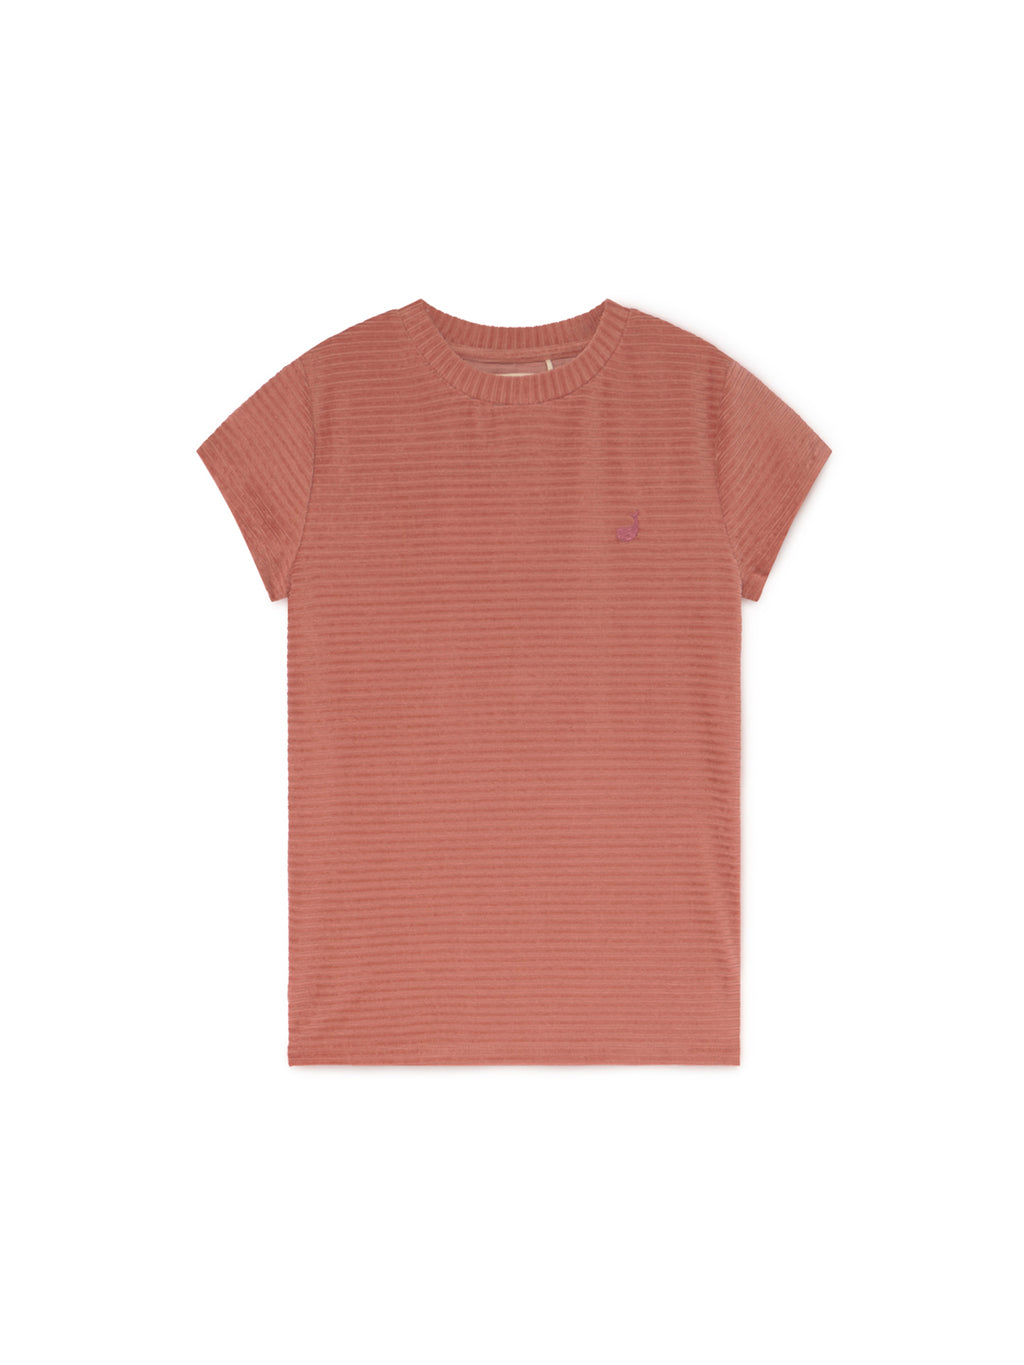 TWOTHIRDS Womens Top: Ariadna - Dusty Pink front